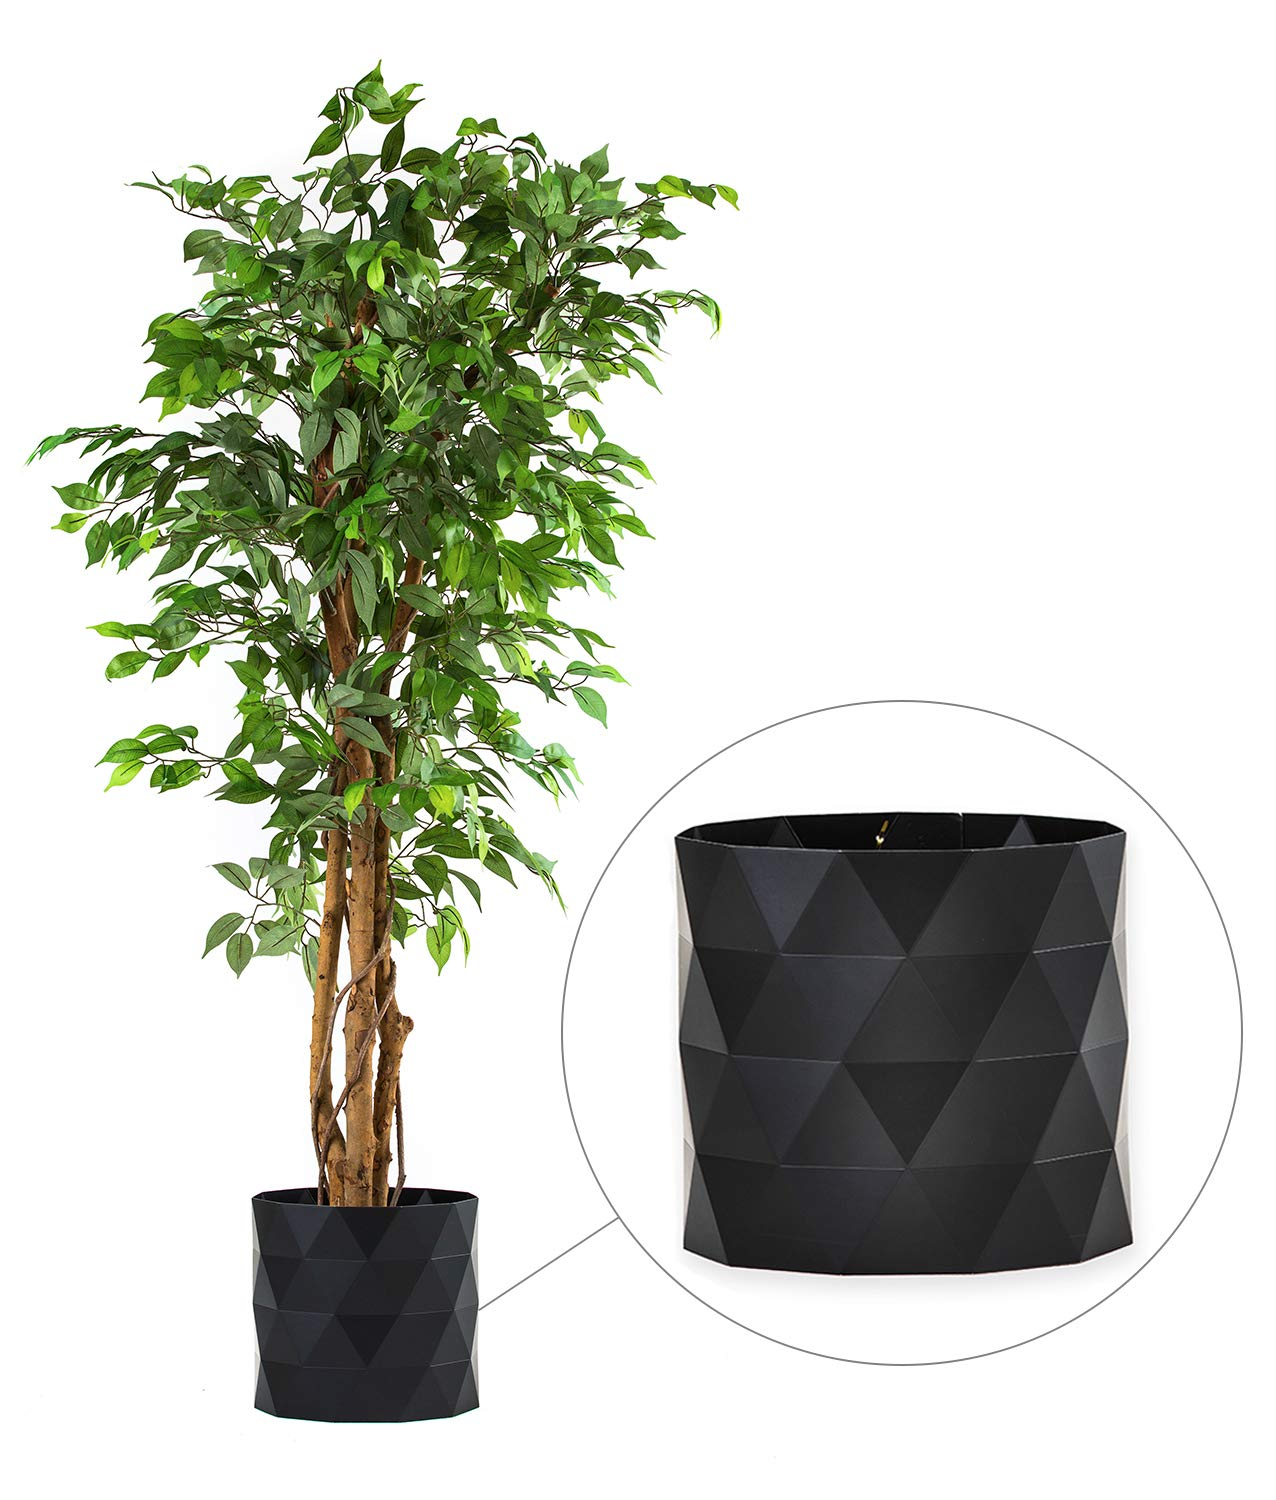 """DELUXE 6 Feet Tall FICUS Silk Leaf Artificial Tree + 8"""" Base + 12"""" Plant Pot Skirt. 18 Feet of Vine Adorn Wide Real Trunks With Green Leaves Allowing Maintenance Free In-Door And Outdoor Use"""